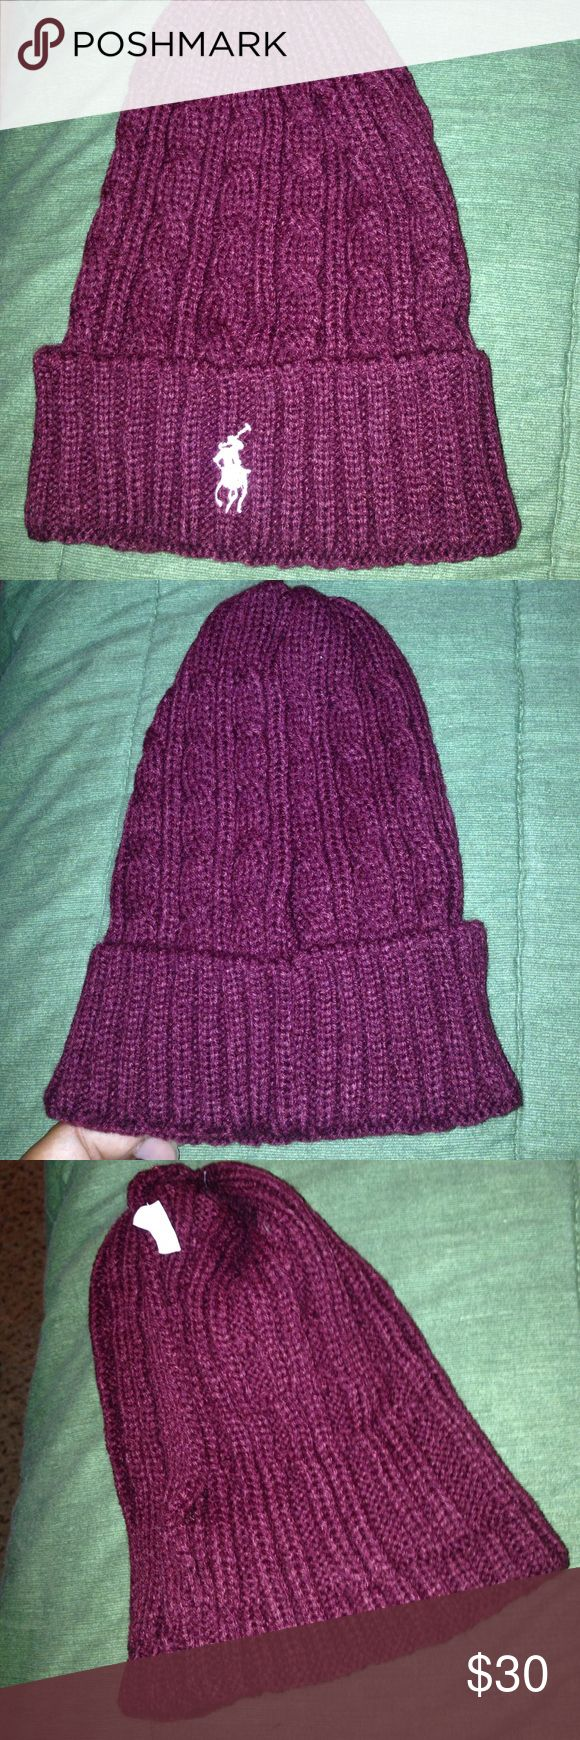 Polo Beanie Burgundy Polo Beanie with white horse. Polo by Ralph Lauren Accessories Hats